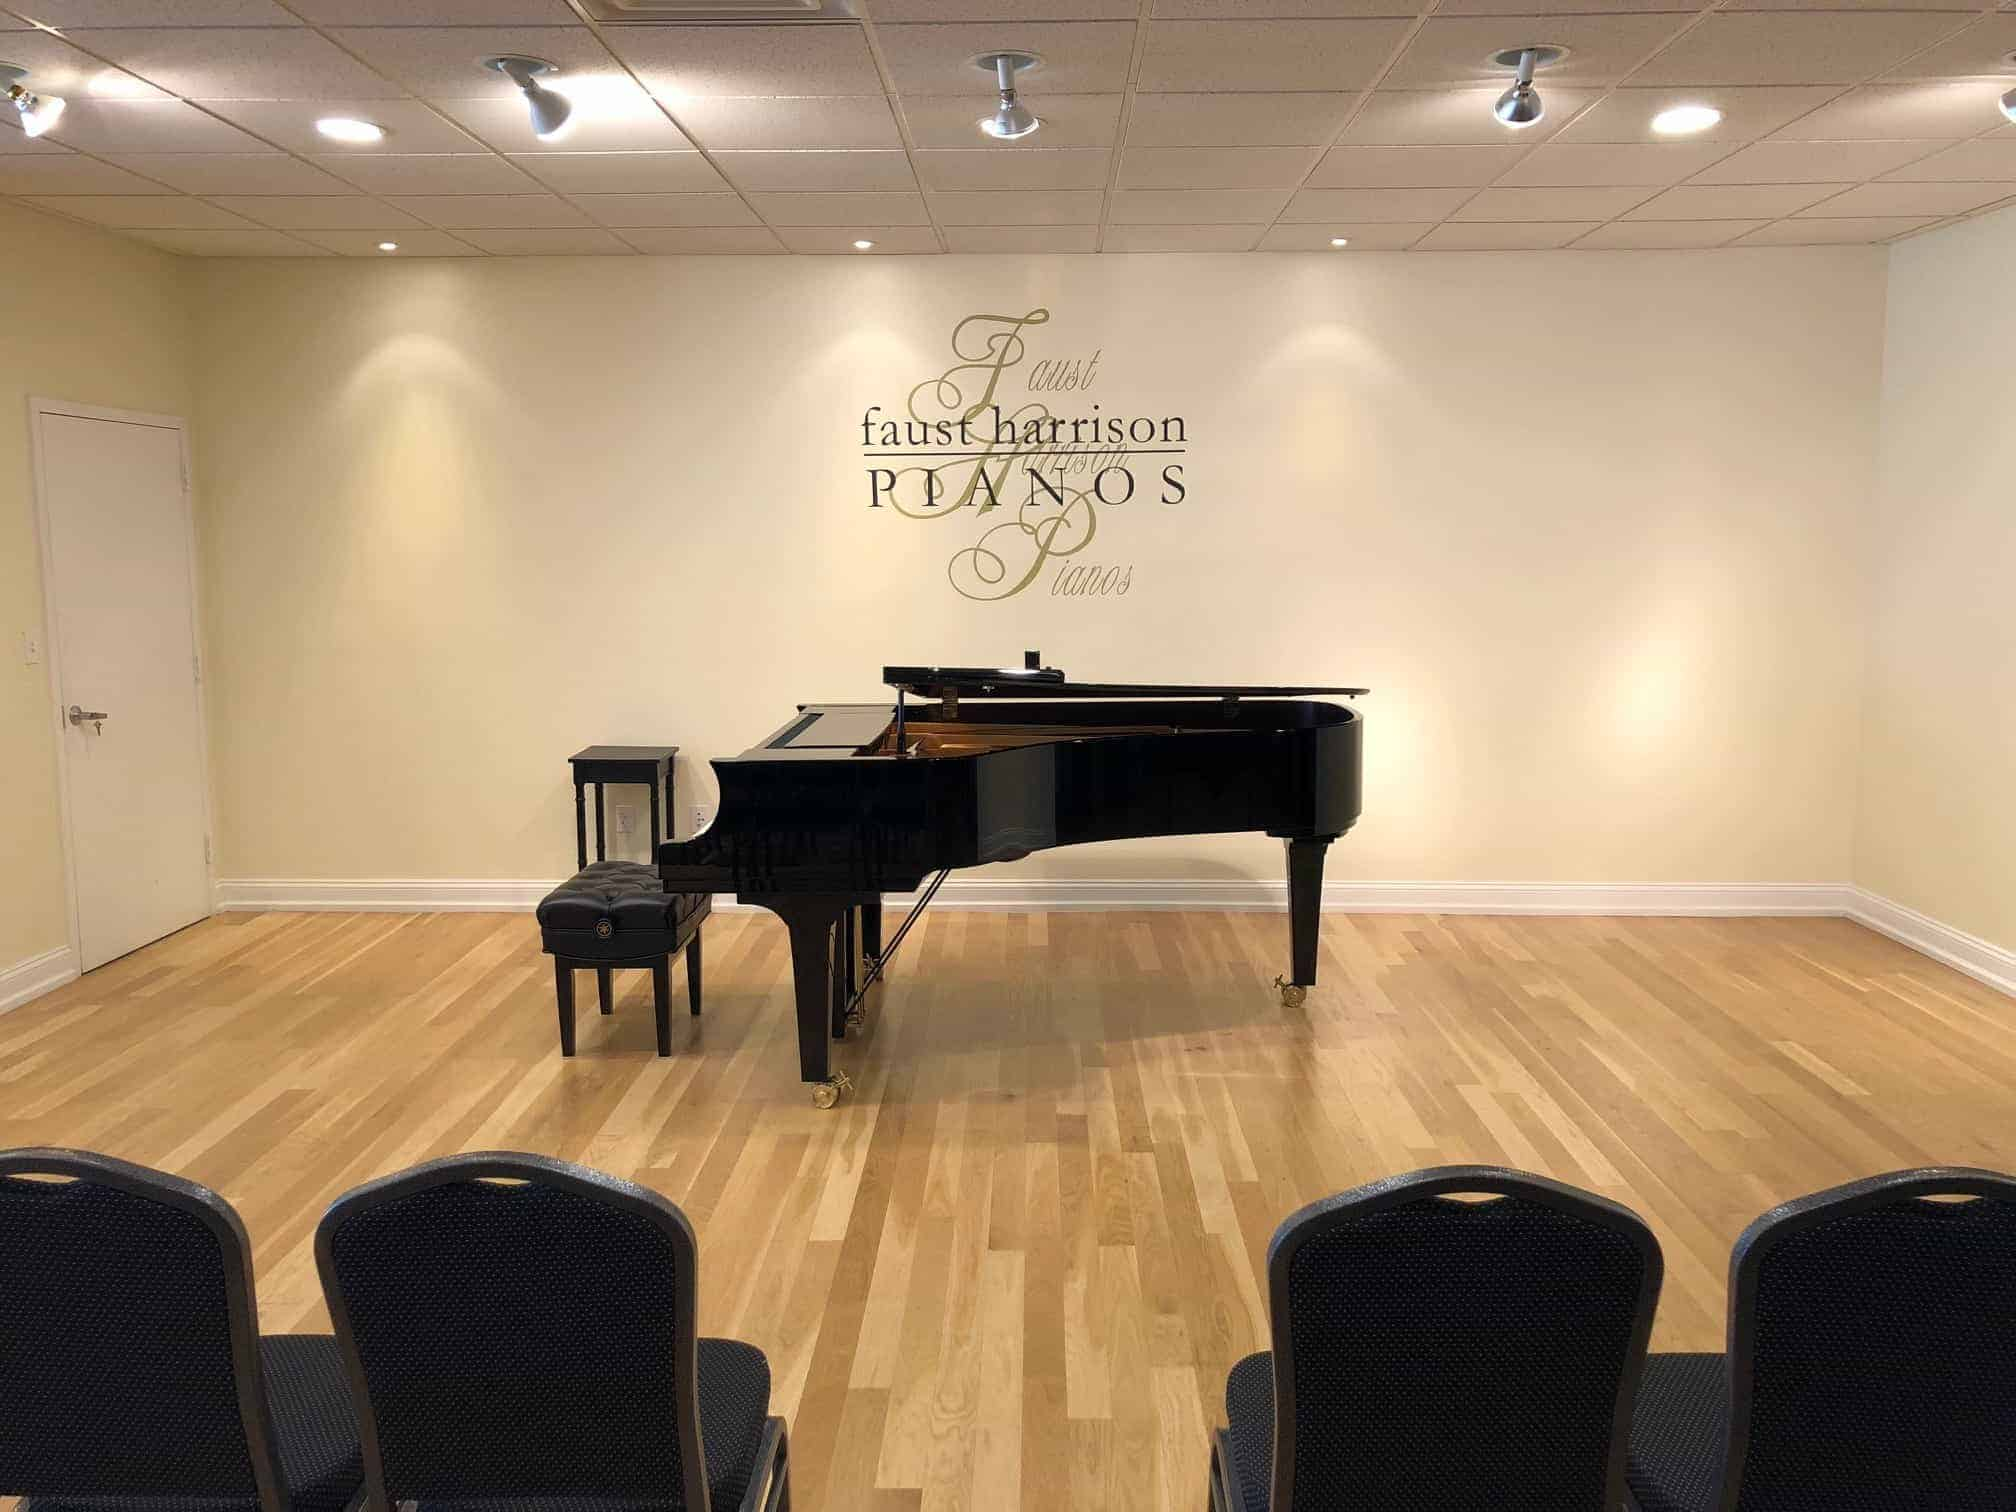 faust harrison pianos recital and concert space